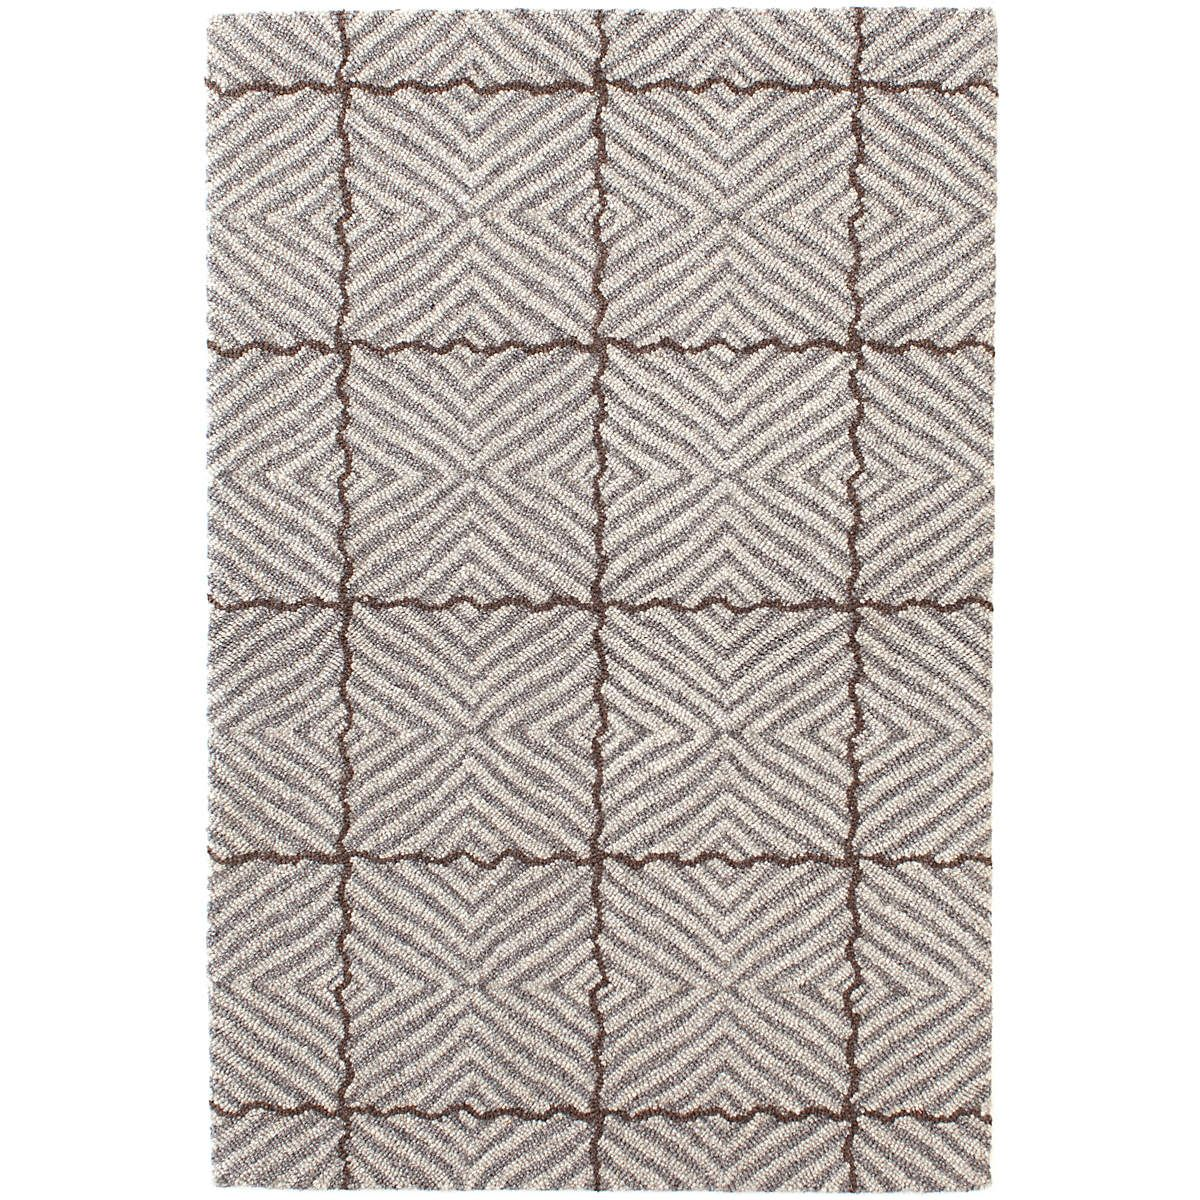 STAIR OR HALL CARPET RUNNER Grey Cream Brown Neutrals made to measure any size